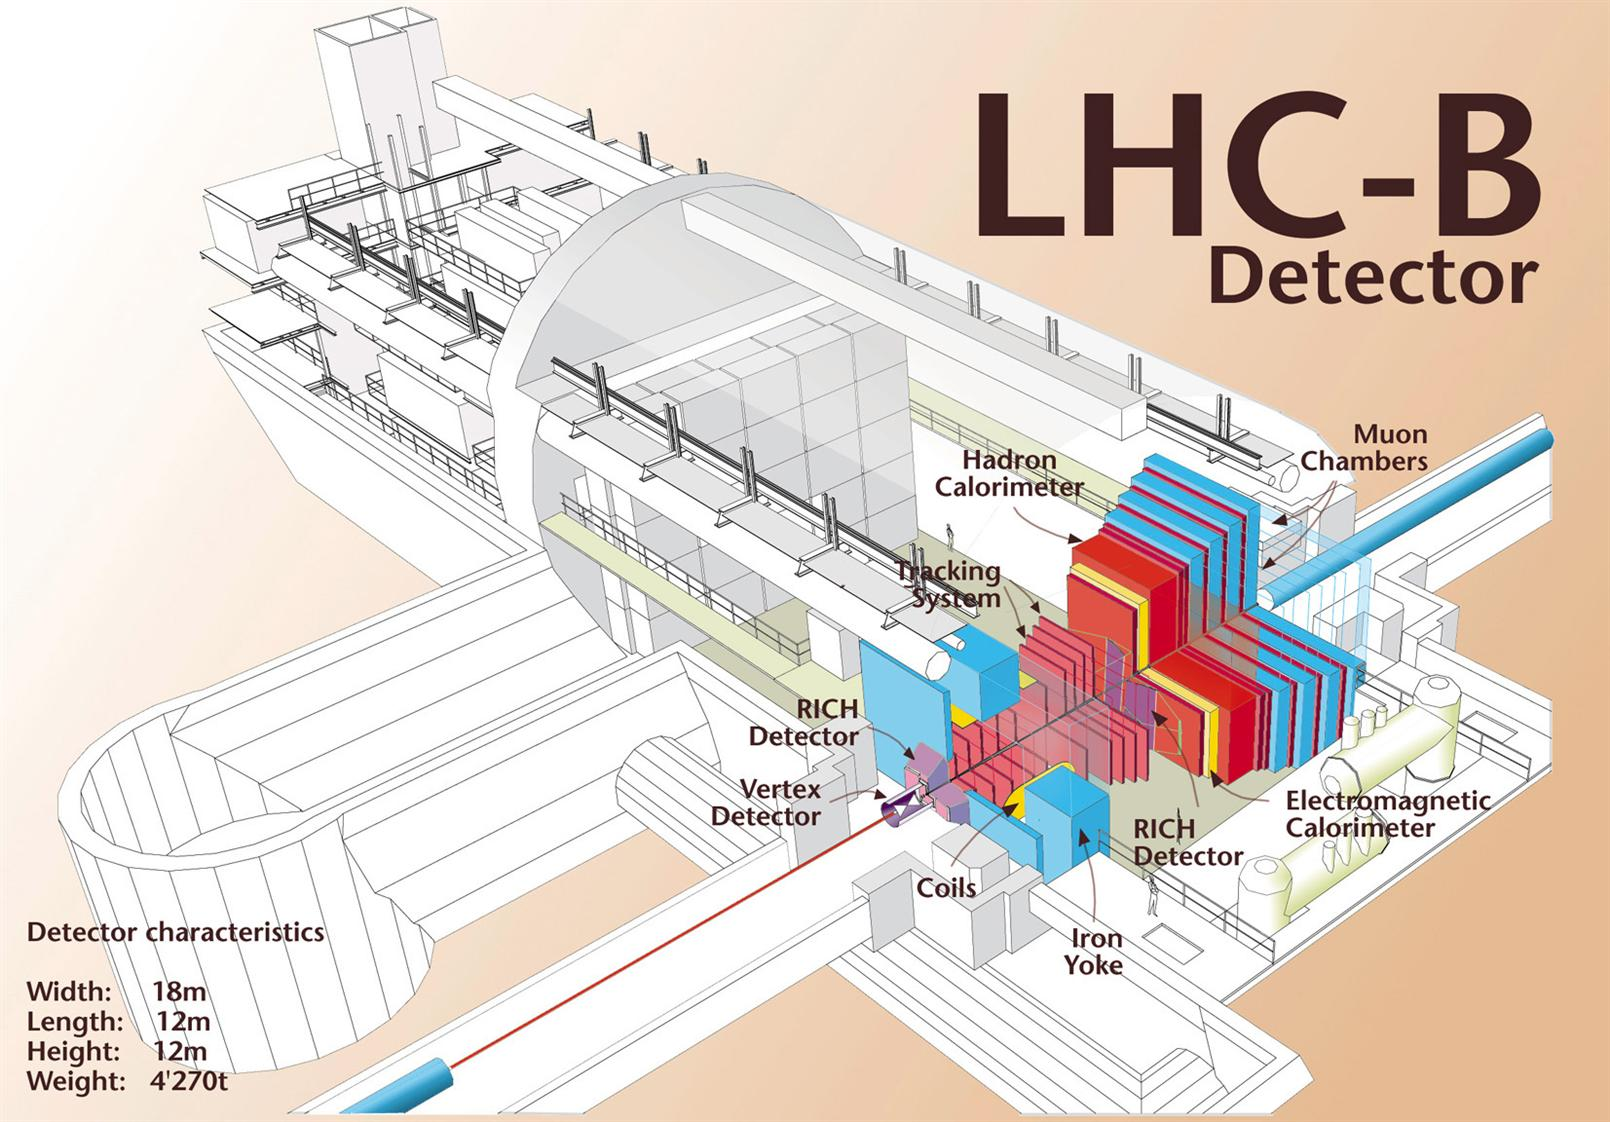 Layout of LHCb